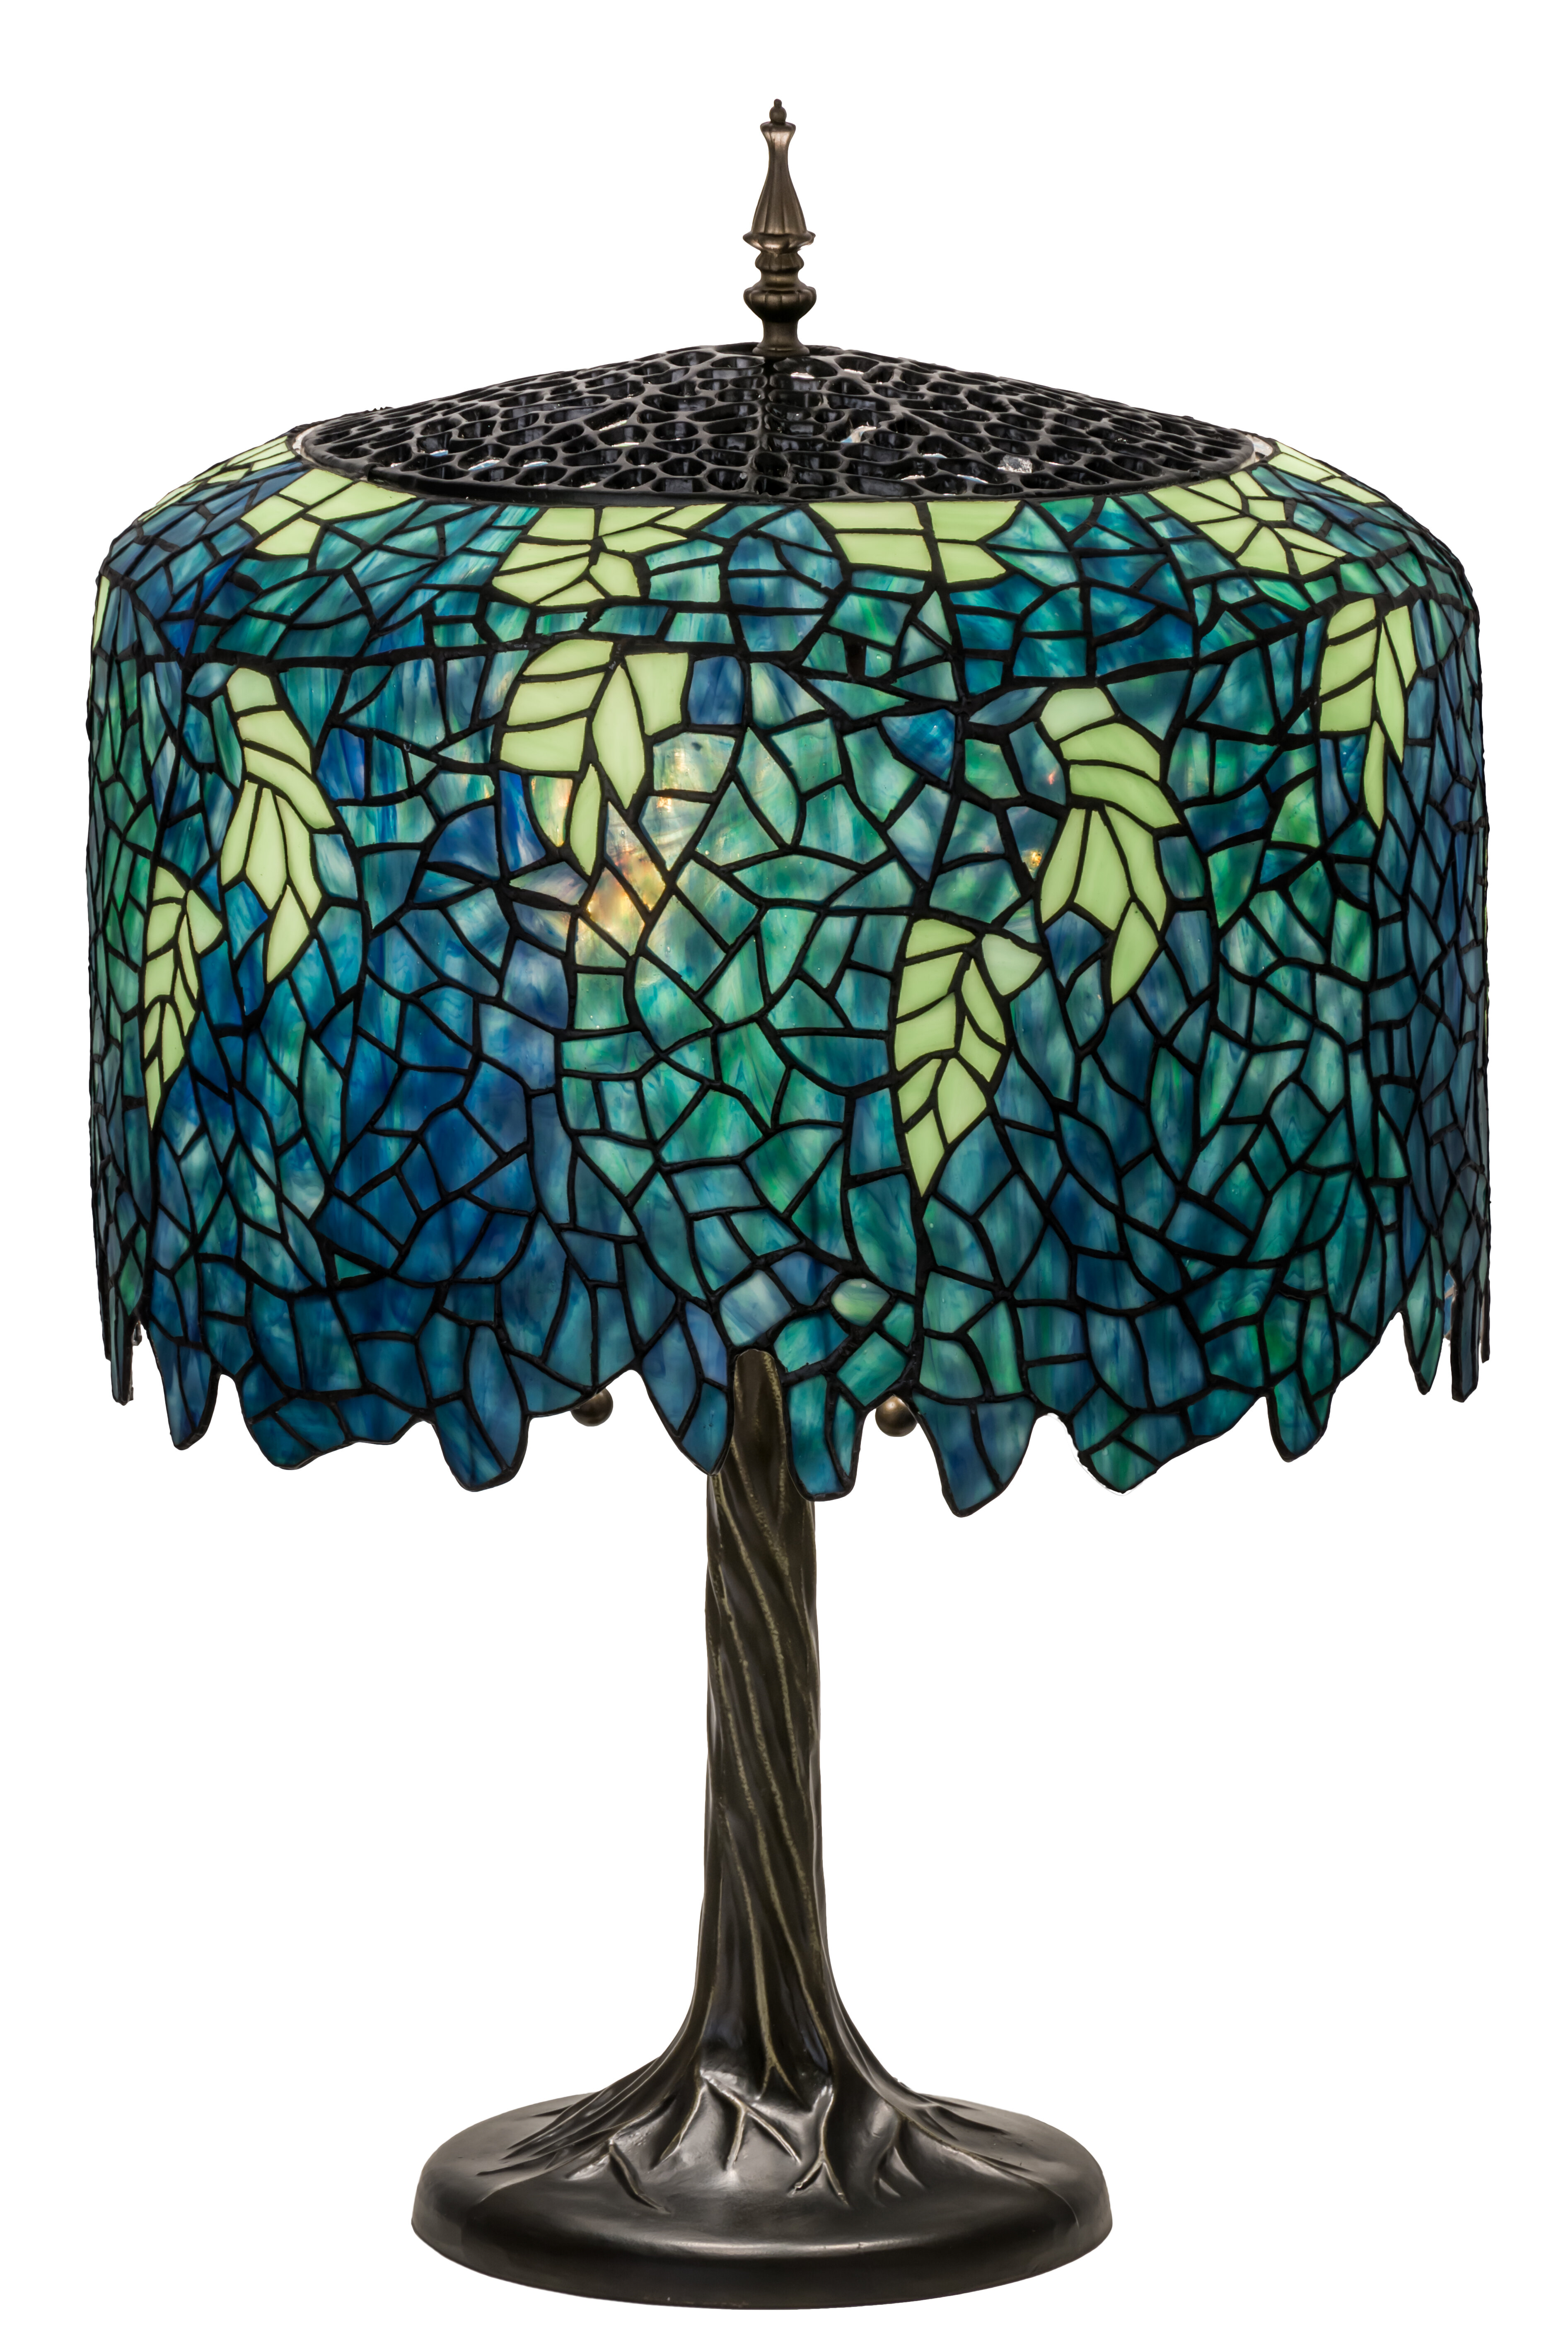 Meyda tiffany wisteria tiffany 28 table lamp wayfair mozeypictures Image collections